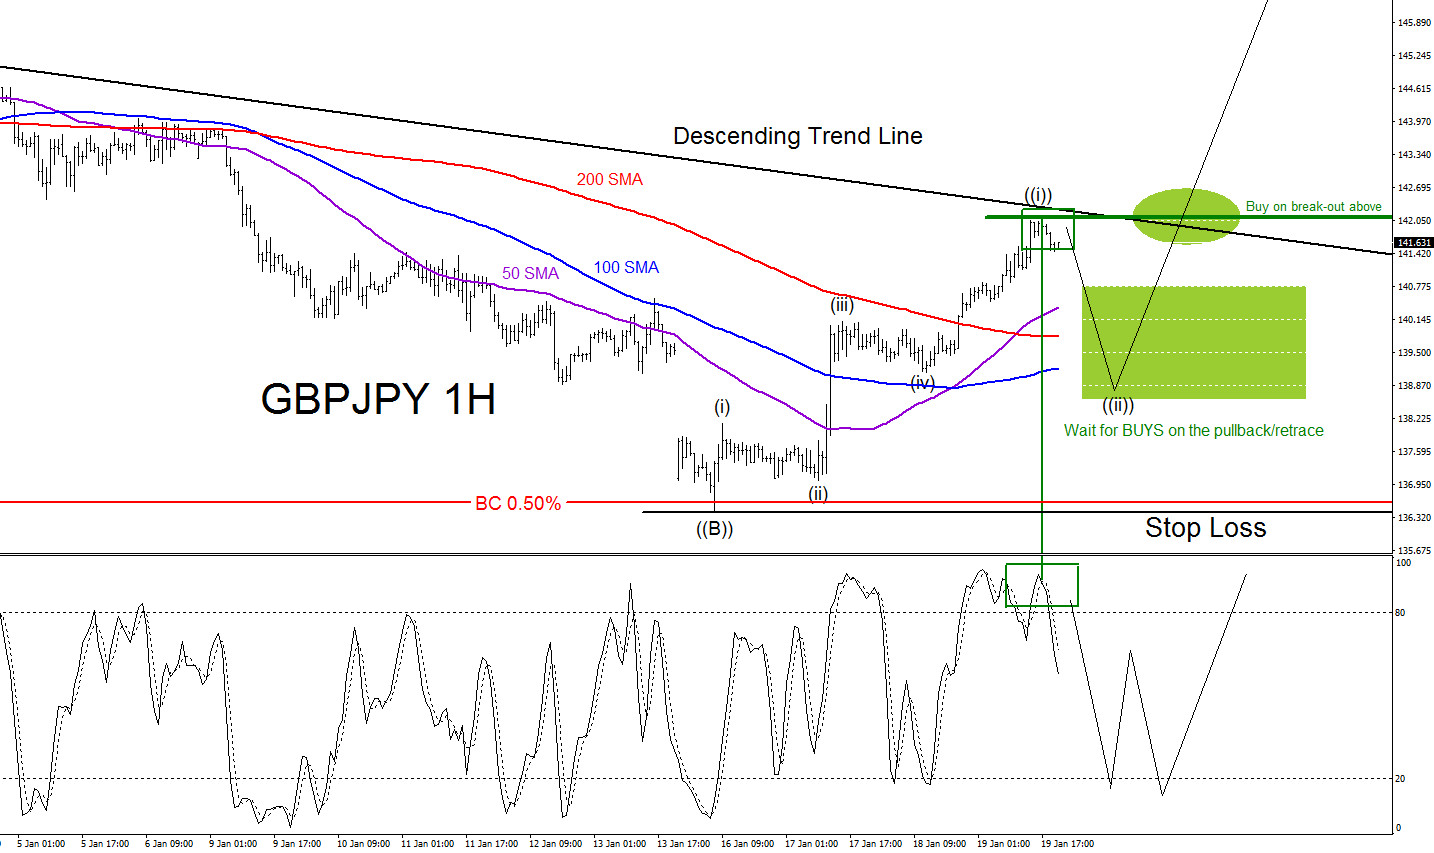 GBPJPY Bullish Trend Starting?